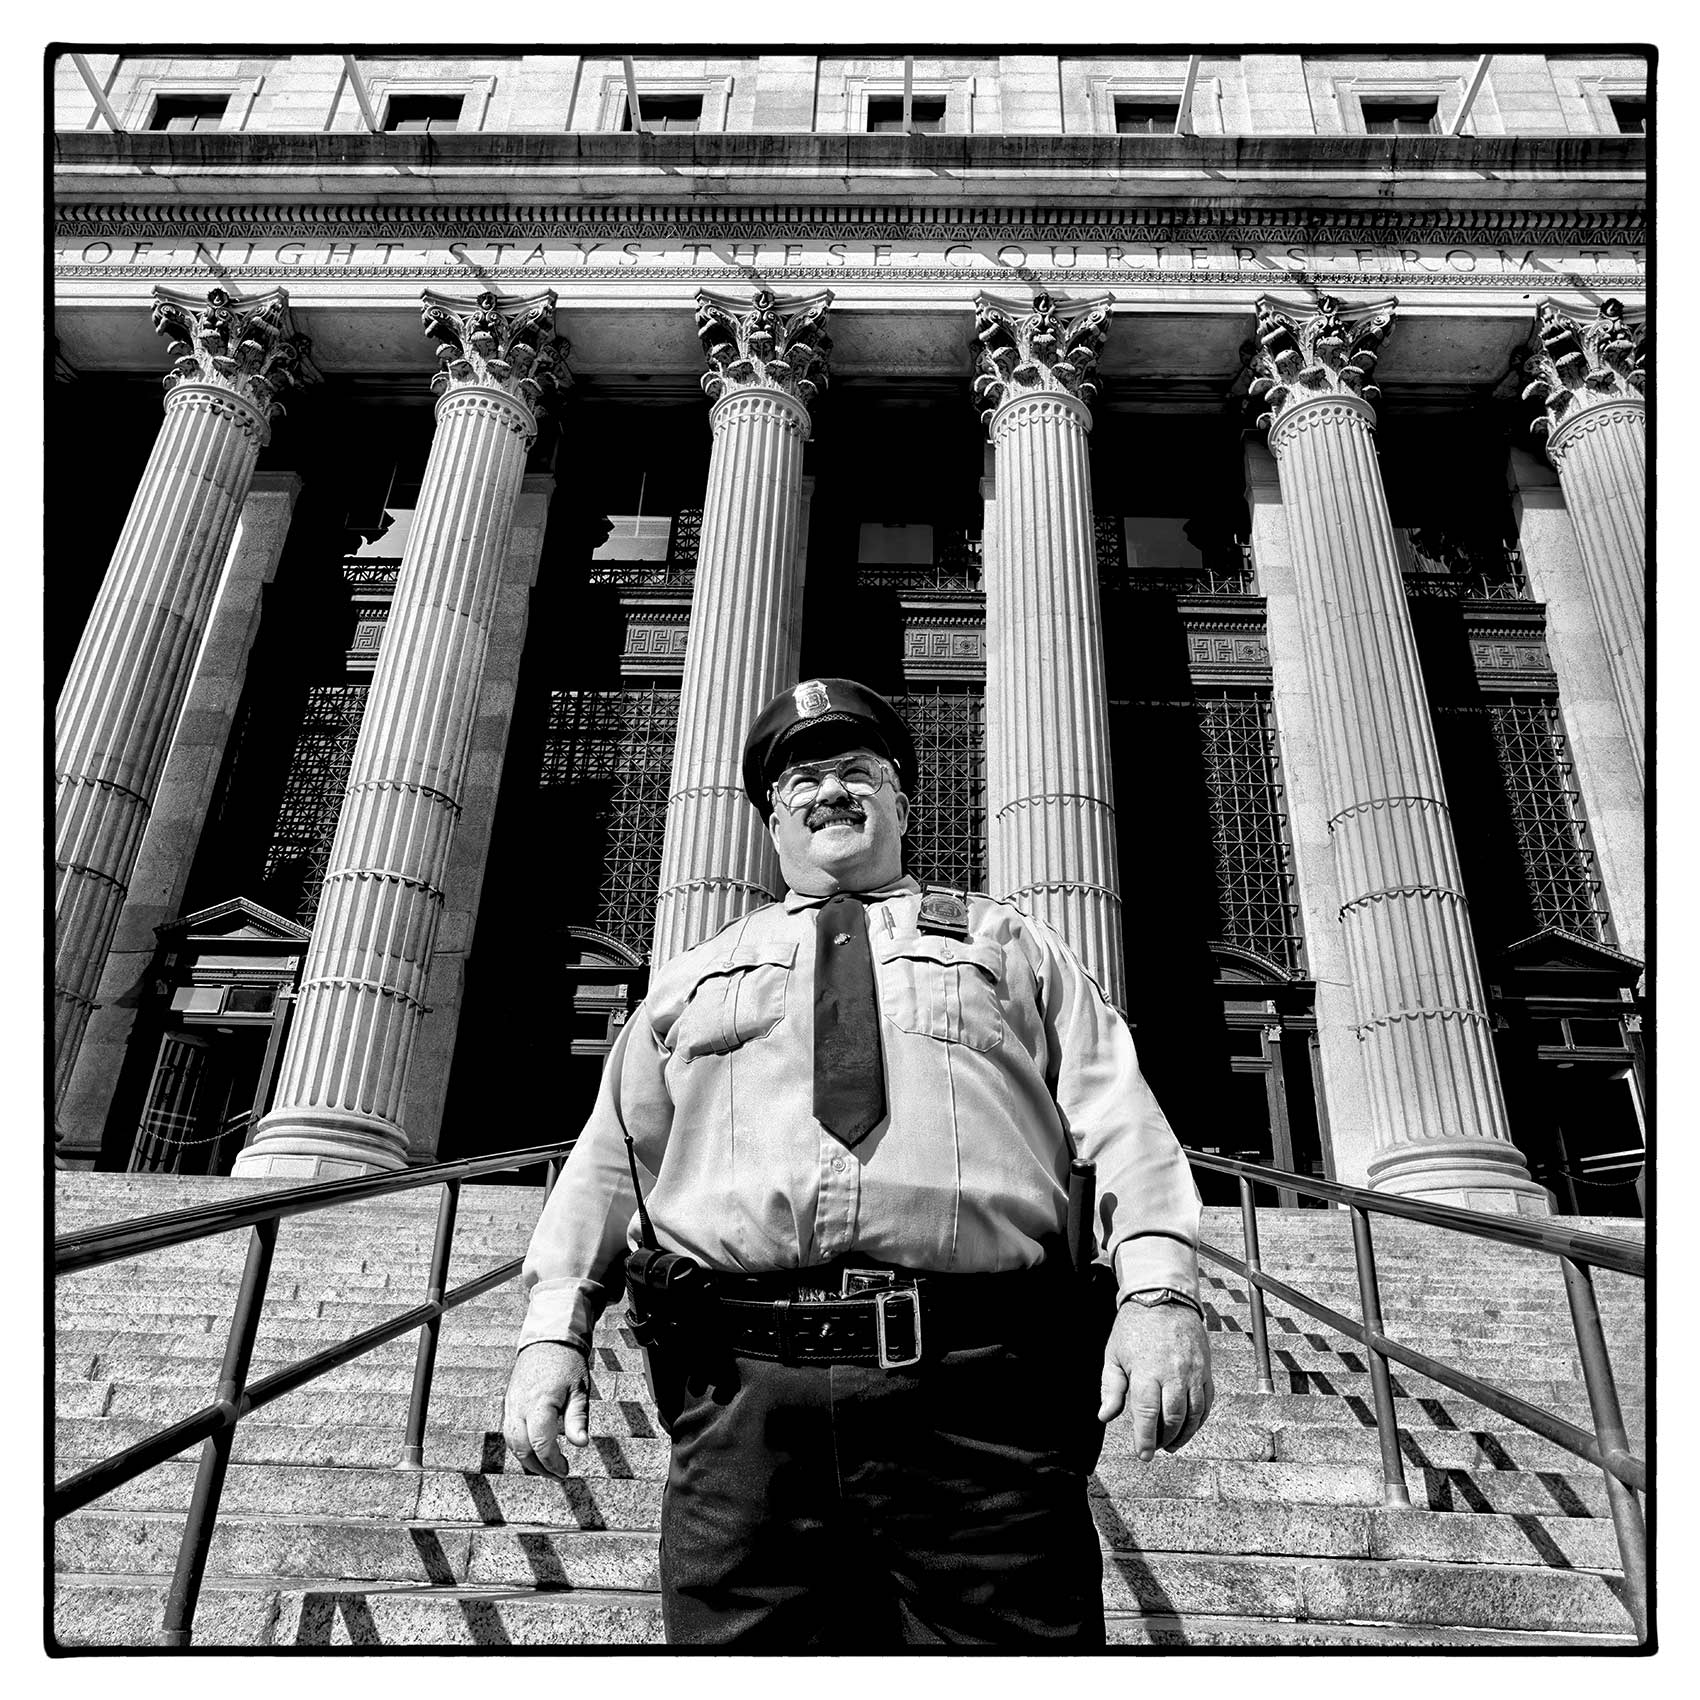 a-nypd-officer-poses-for-a-photo-in-front-of-the-new-york-post-office-in-manhattan